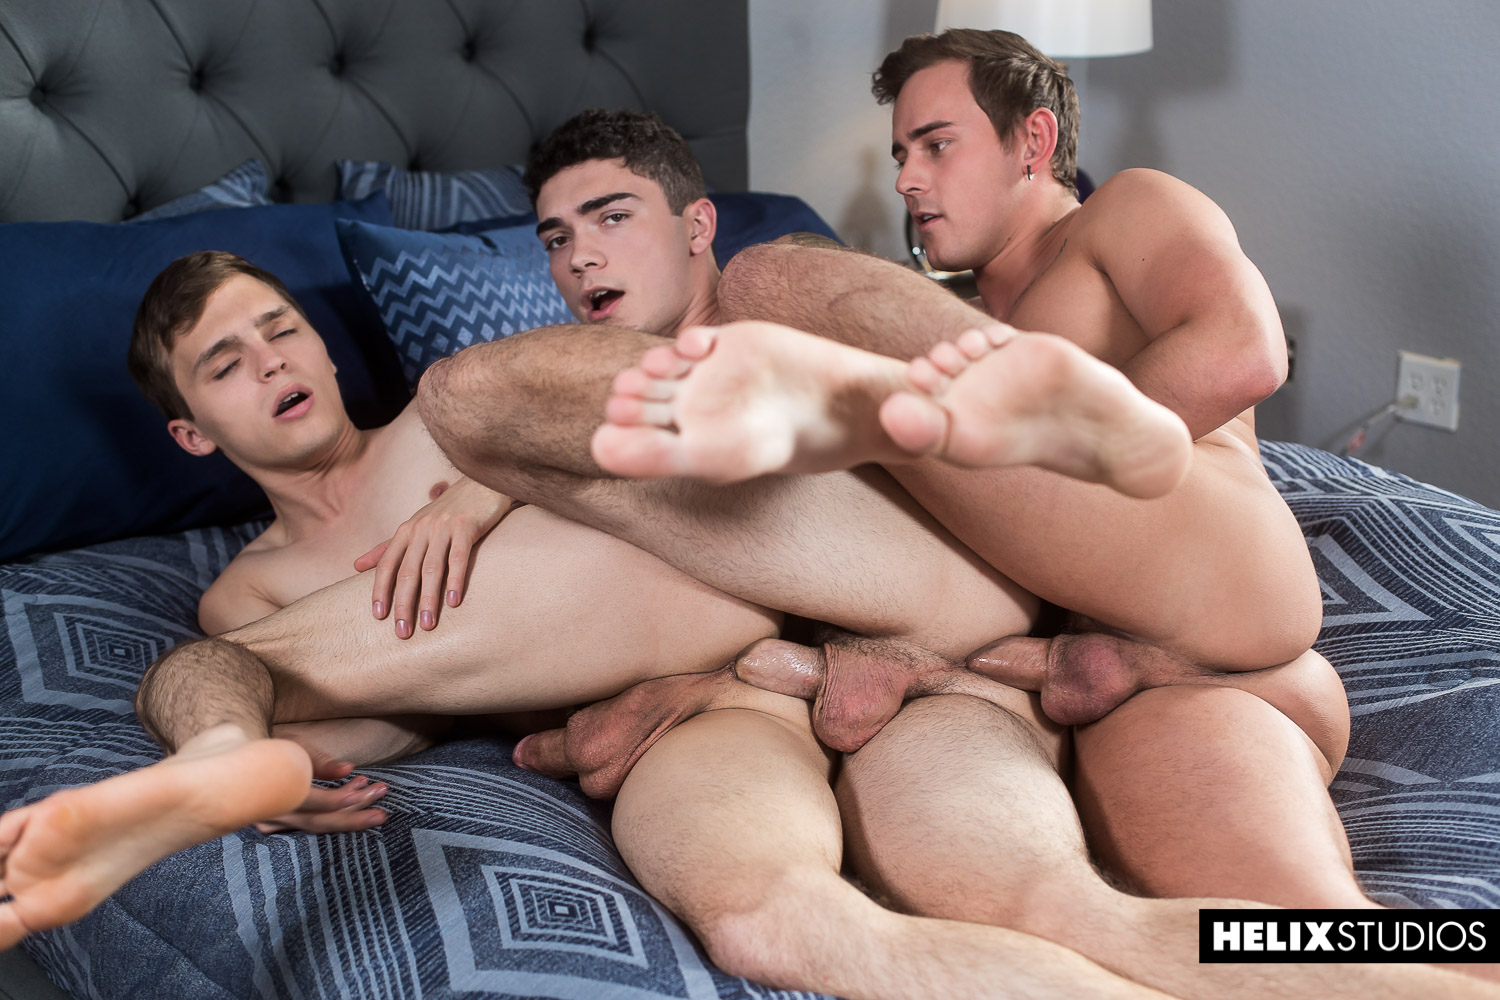 Helix Studios gay boys having a threesome